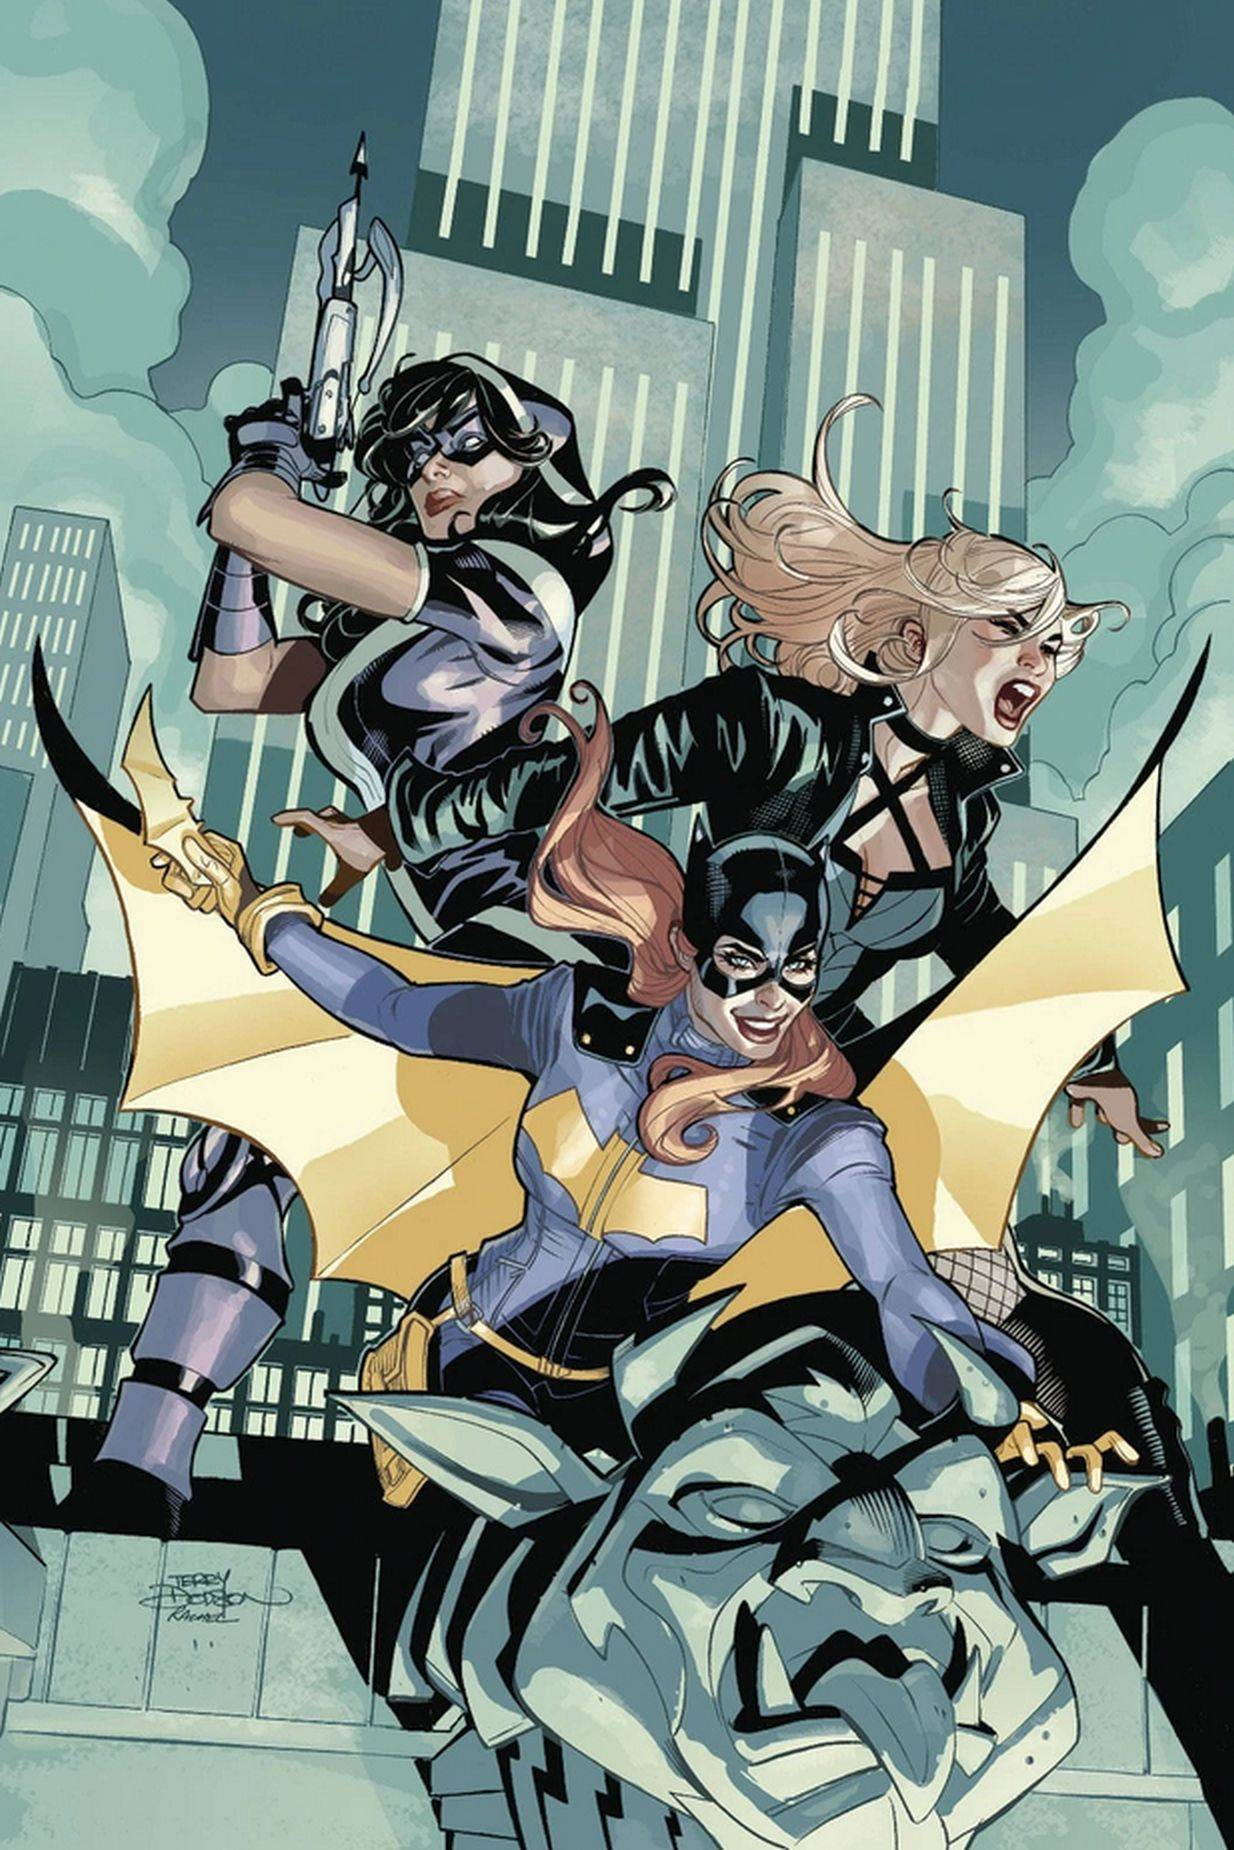 The original Birds of Prey was formed by Oracle/Batgirl, Huntress and Black Canary.